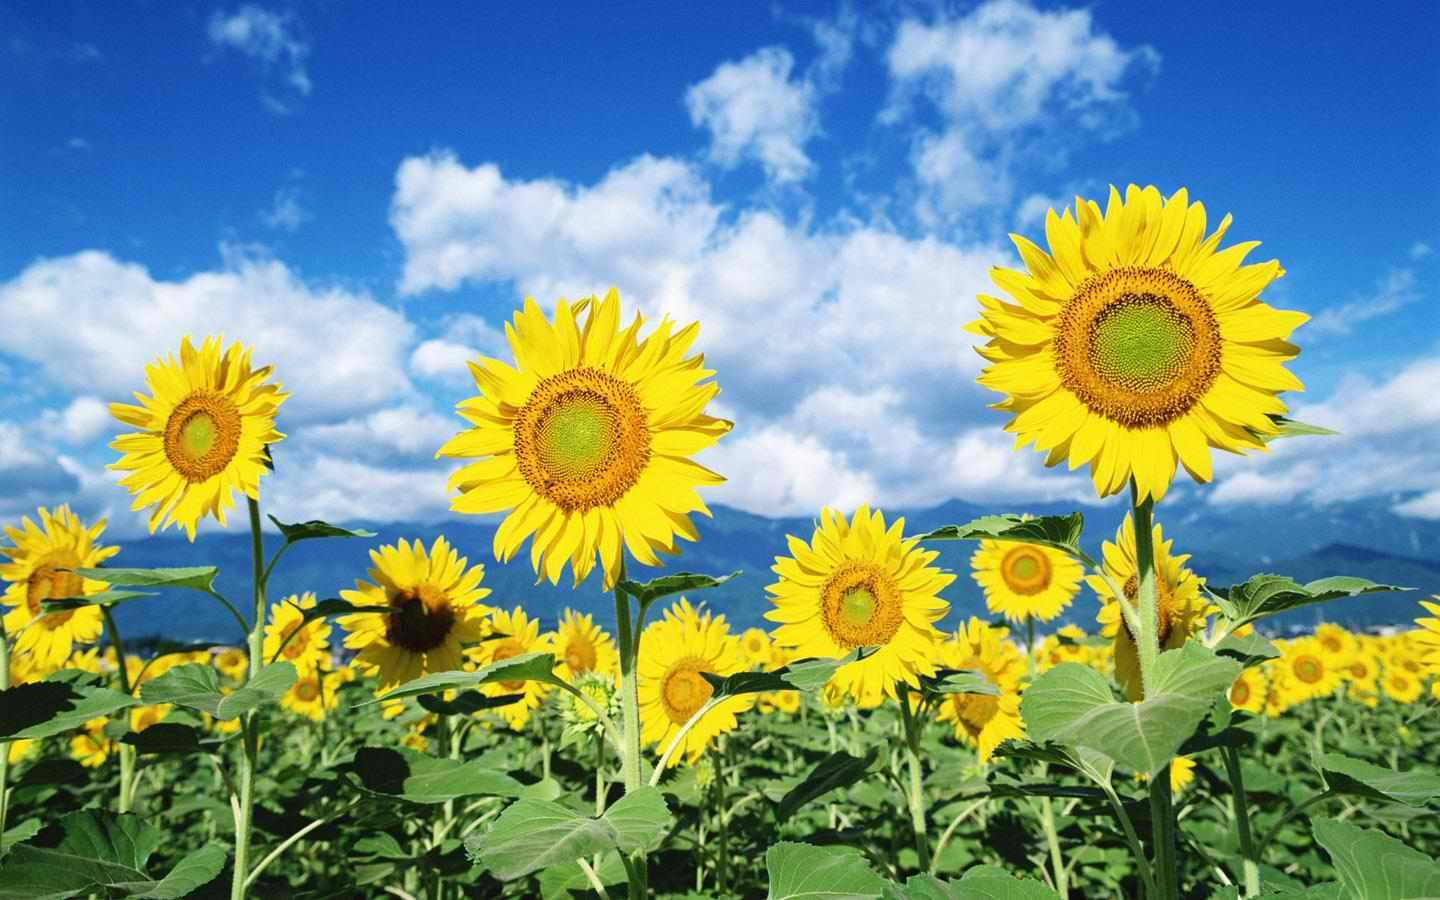 sunflower seeds ~sunflowers~